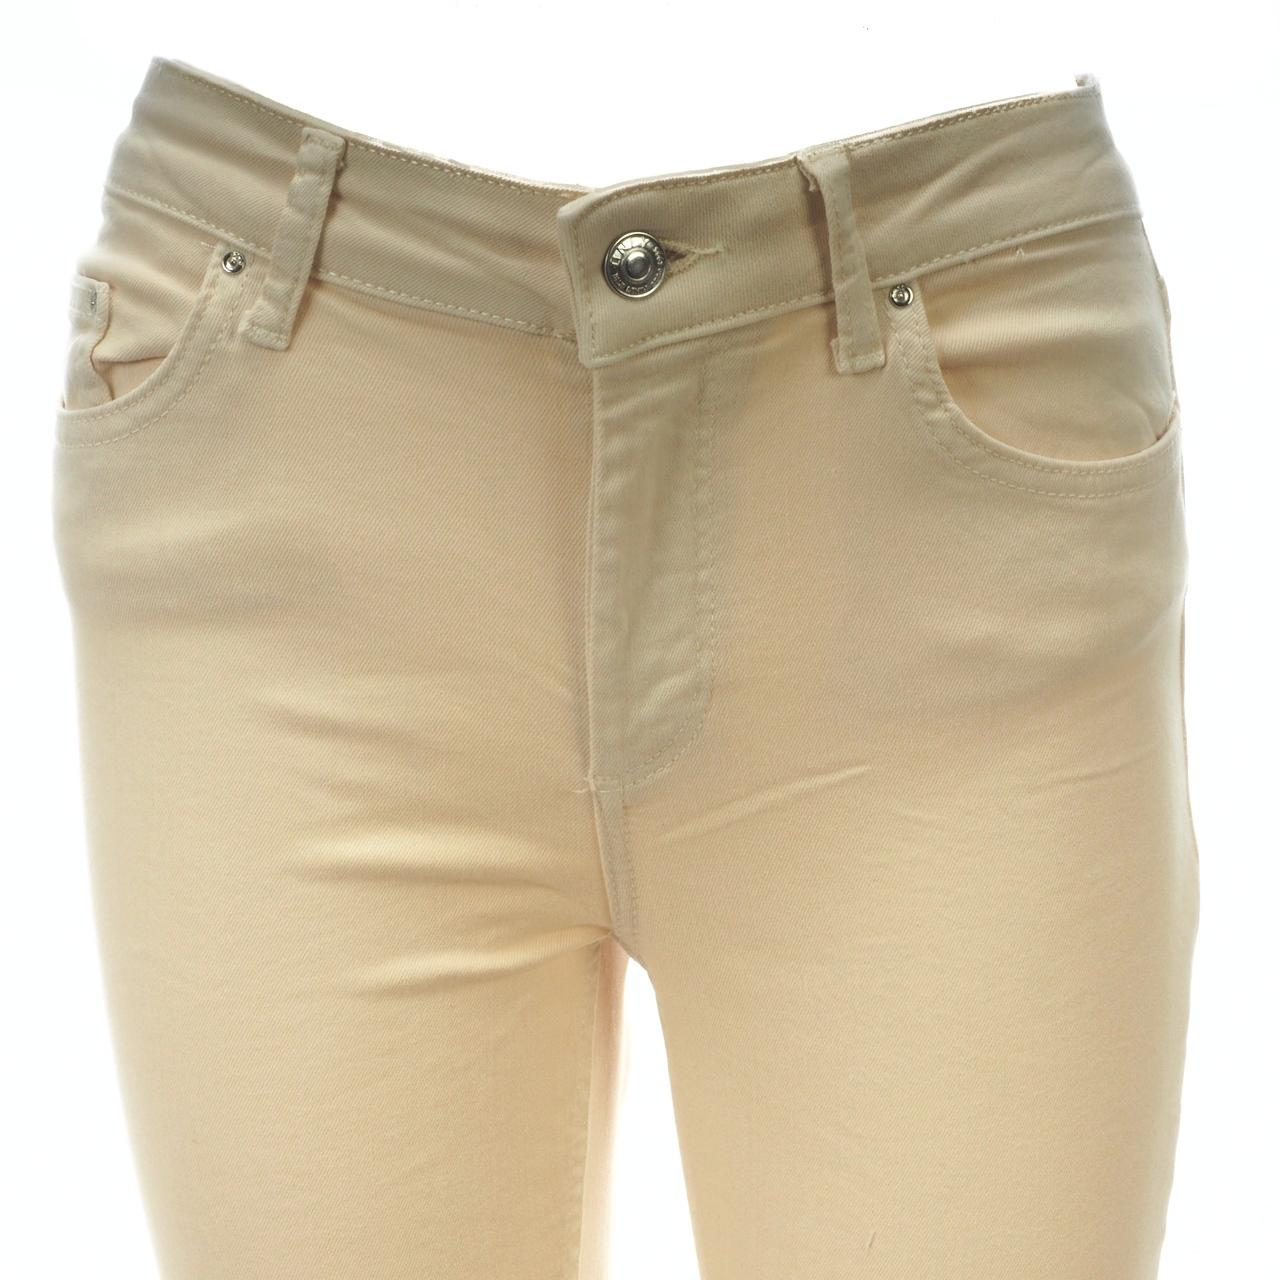 Trousers-Slim-Jeans-only-Blush-32-Egret-Jeans-L-Beige-18666-New thumbnail 3